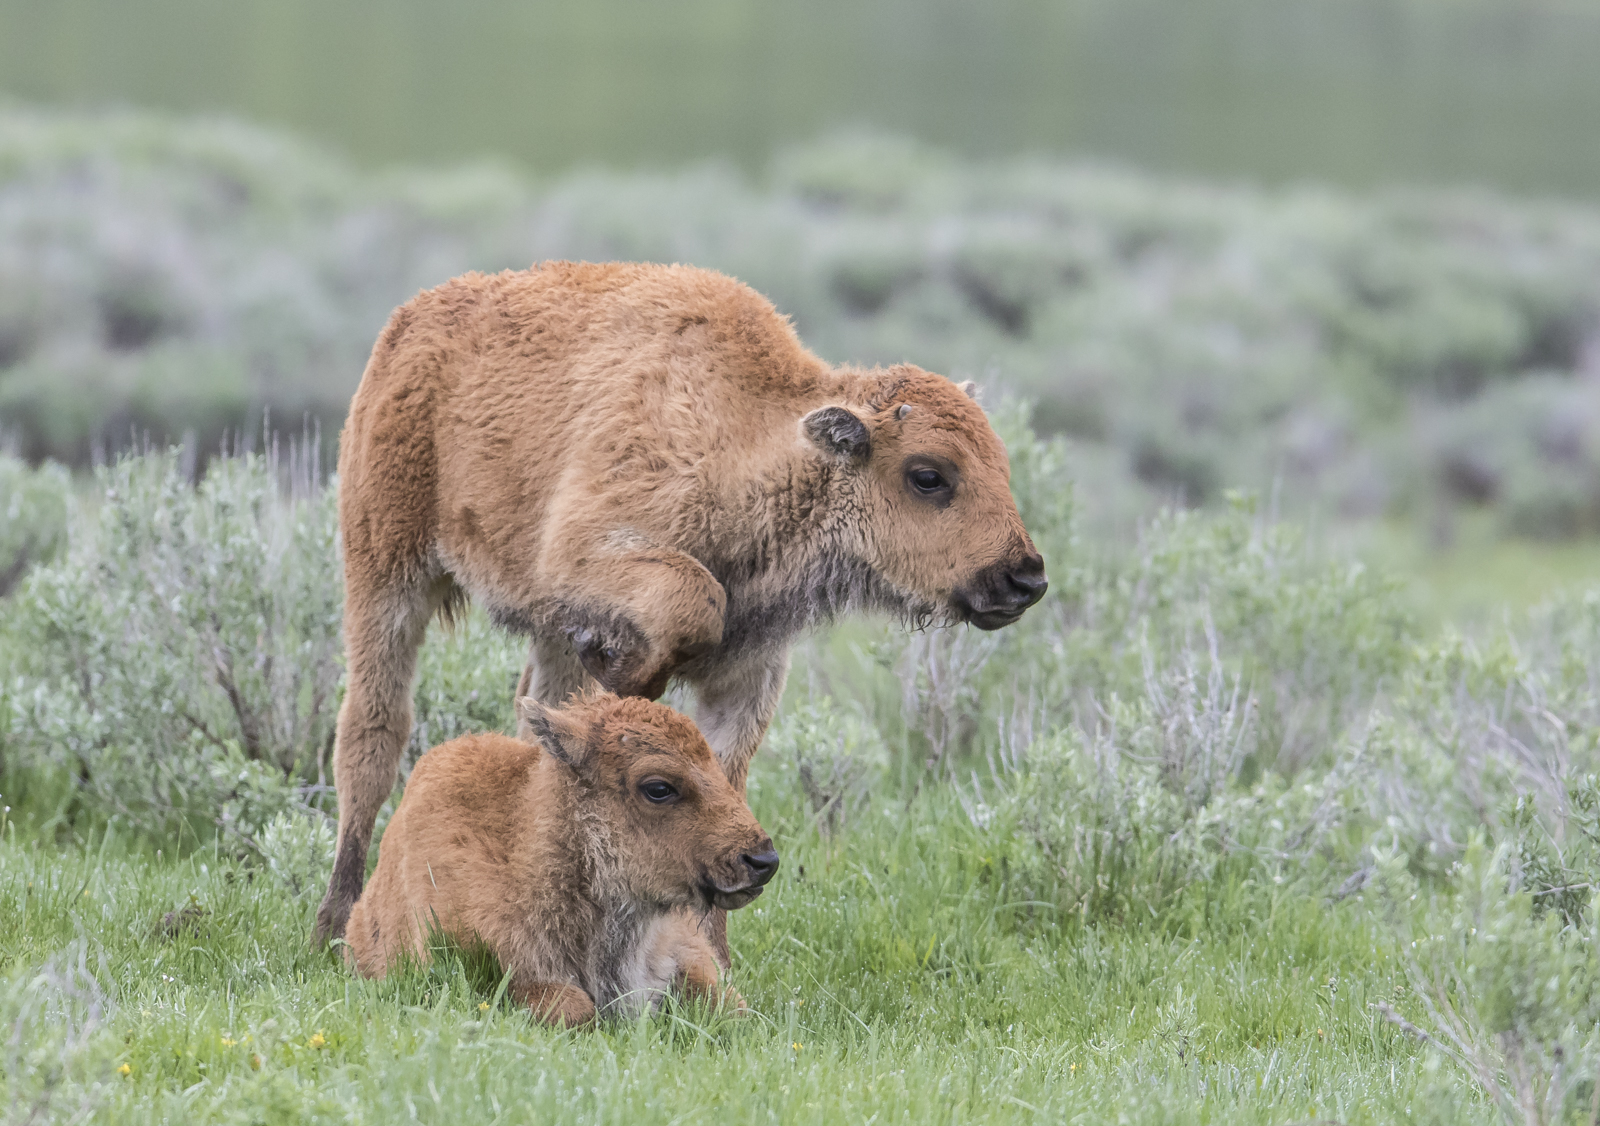 Baby bison trying to get another to play